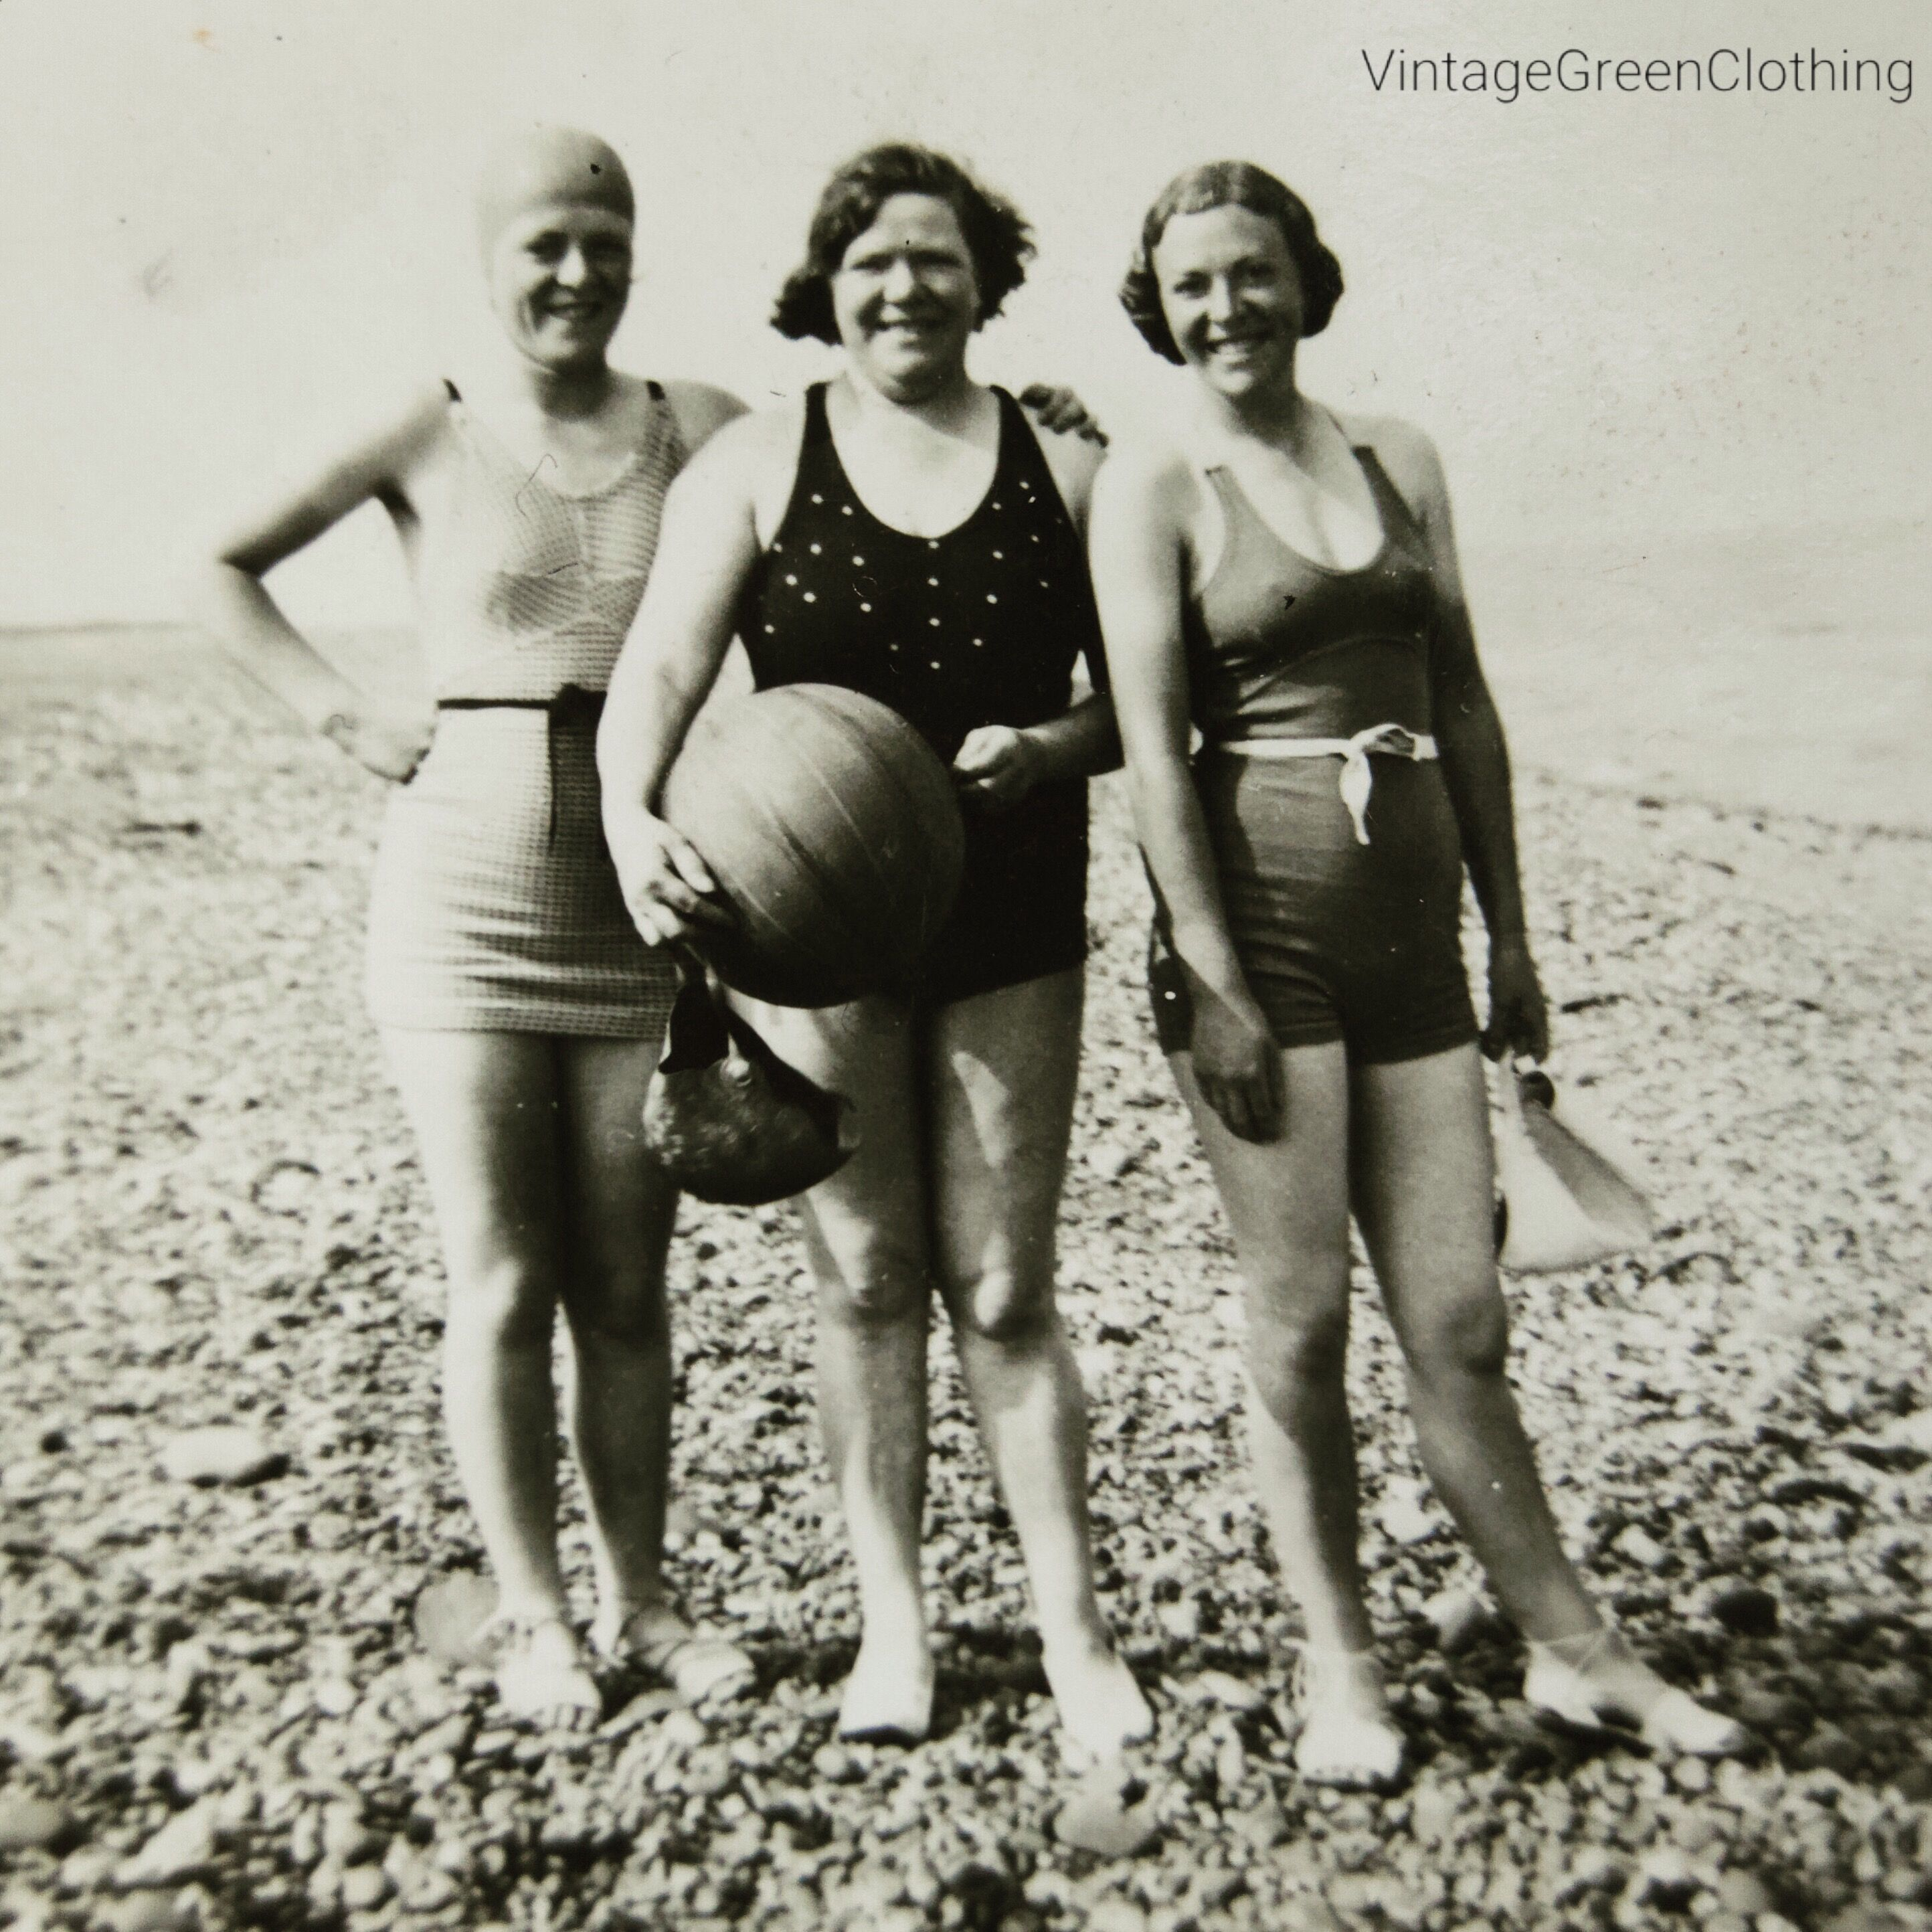 9b1d3f6d16 Vintage photograph - 1930 s  day at the beach . Fashion reference    resource - Ladies swimwear